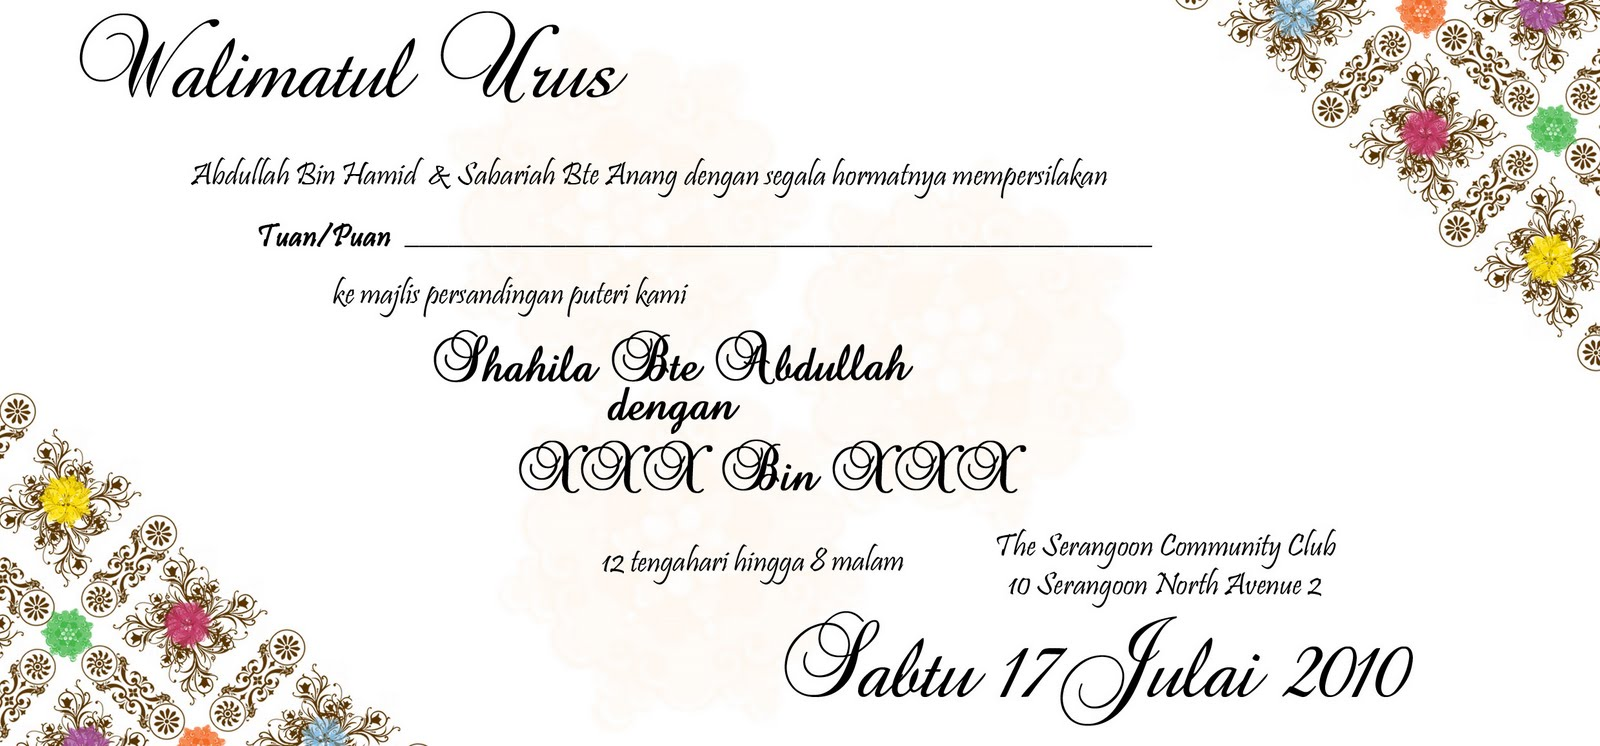 wedding invitation draft, Pew